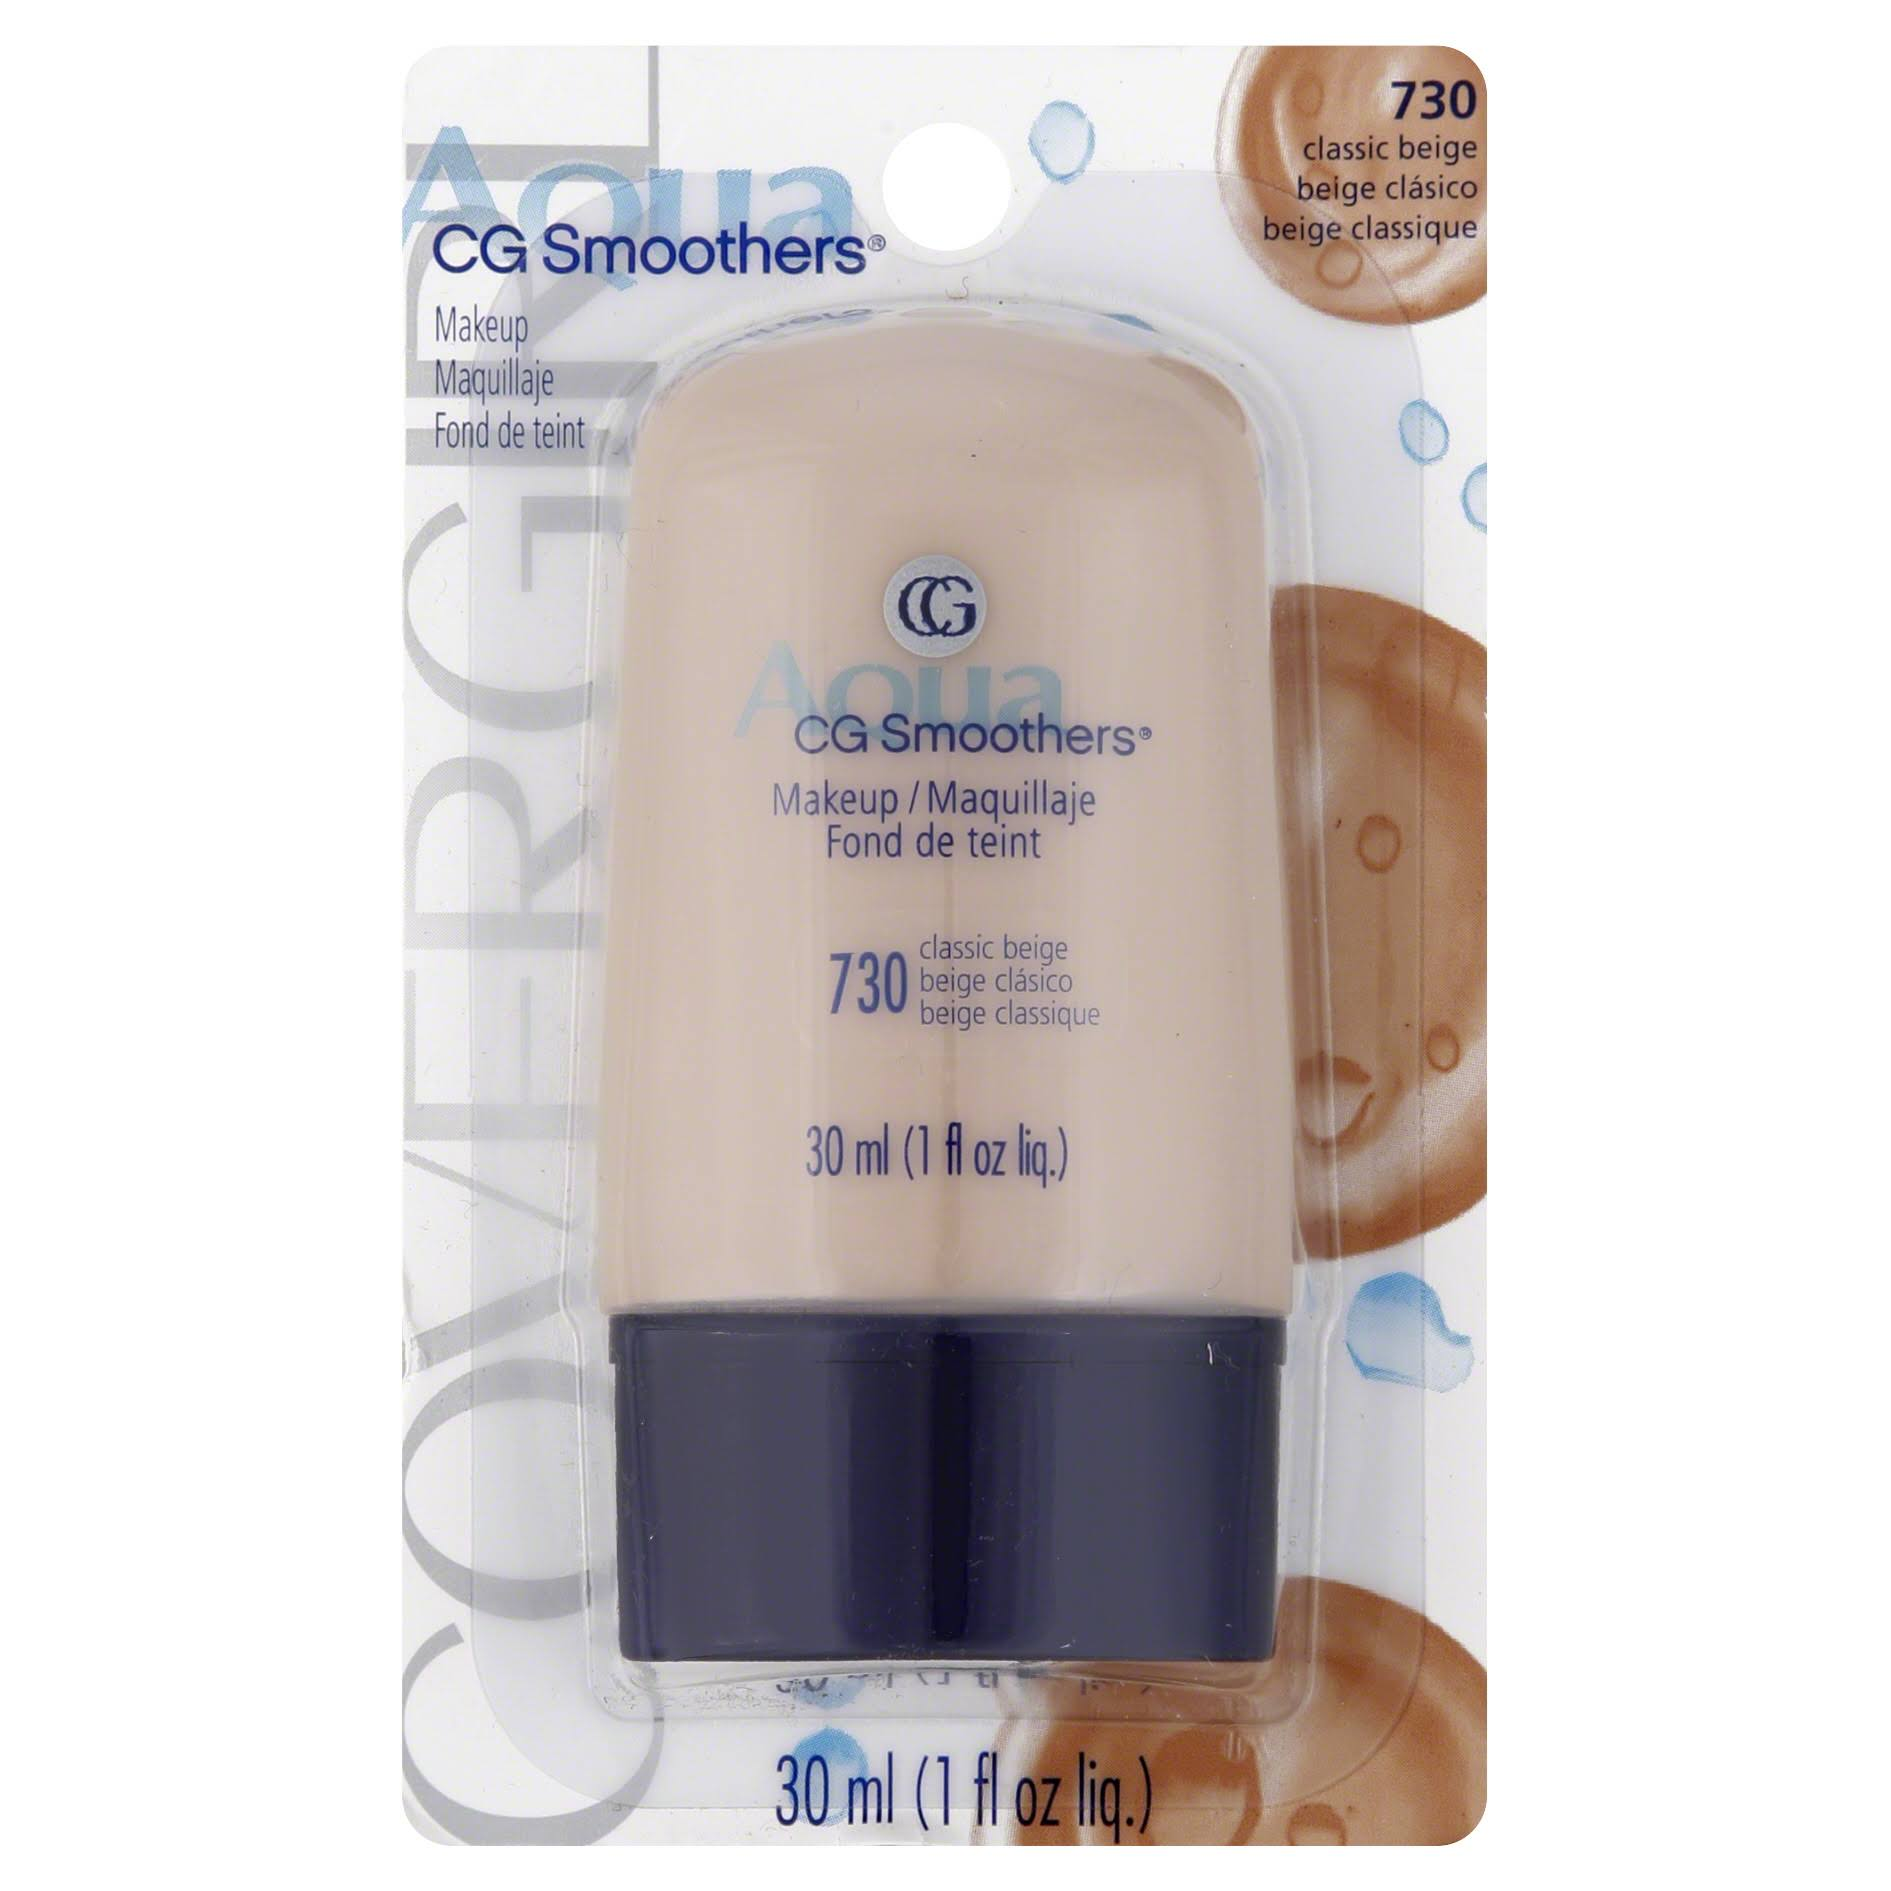 CoverGirl Smoothers All Day Hydrating Make-Up - Classic Beige, 30ml